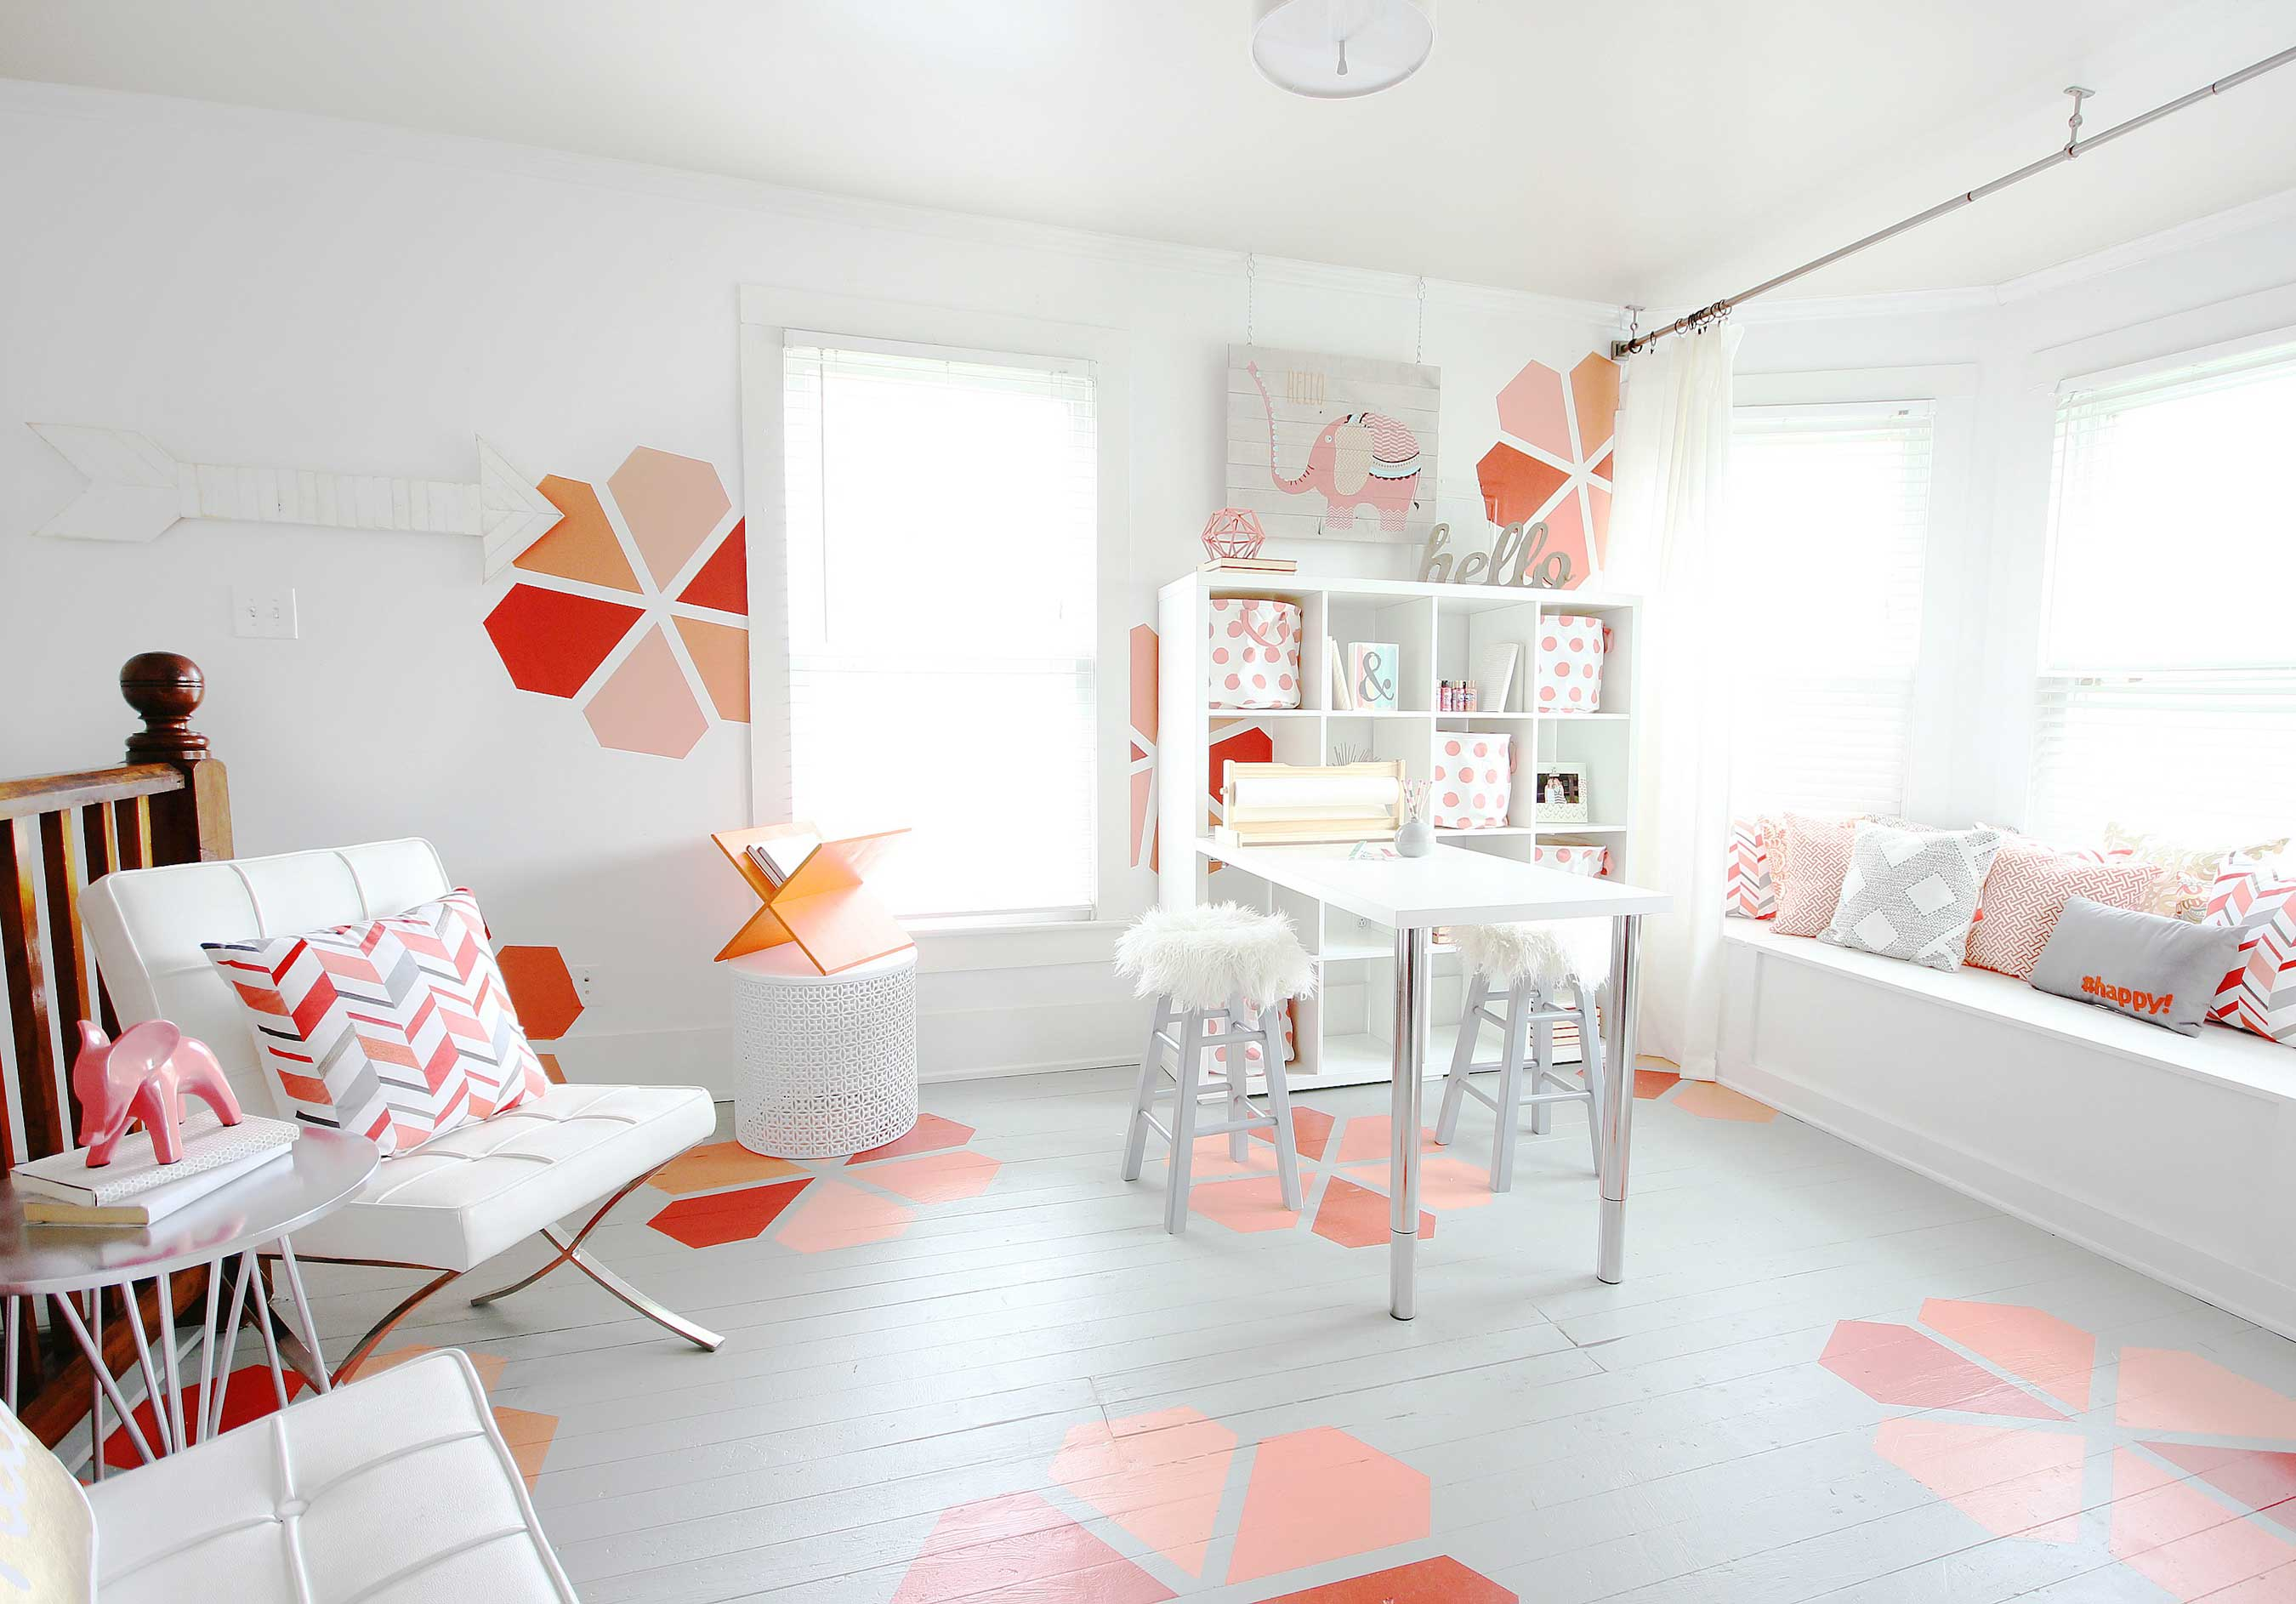 """Winner: KariAnne Wood, """"Thistlewood Farms"""" – final room reveal for FrogTapeFrogTape® Paintover Challenge™"""